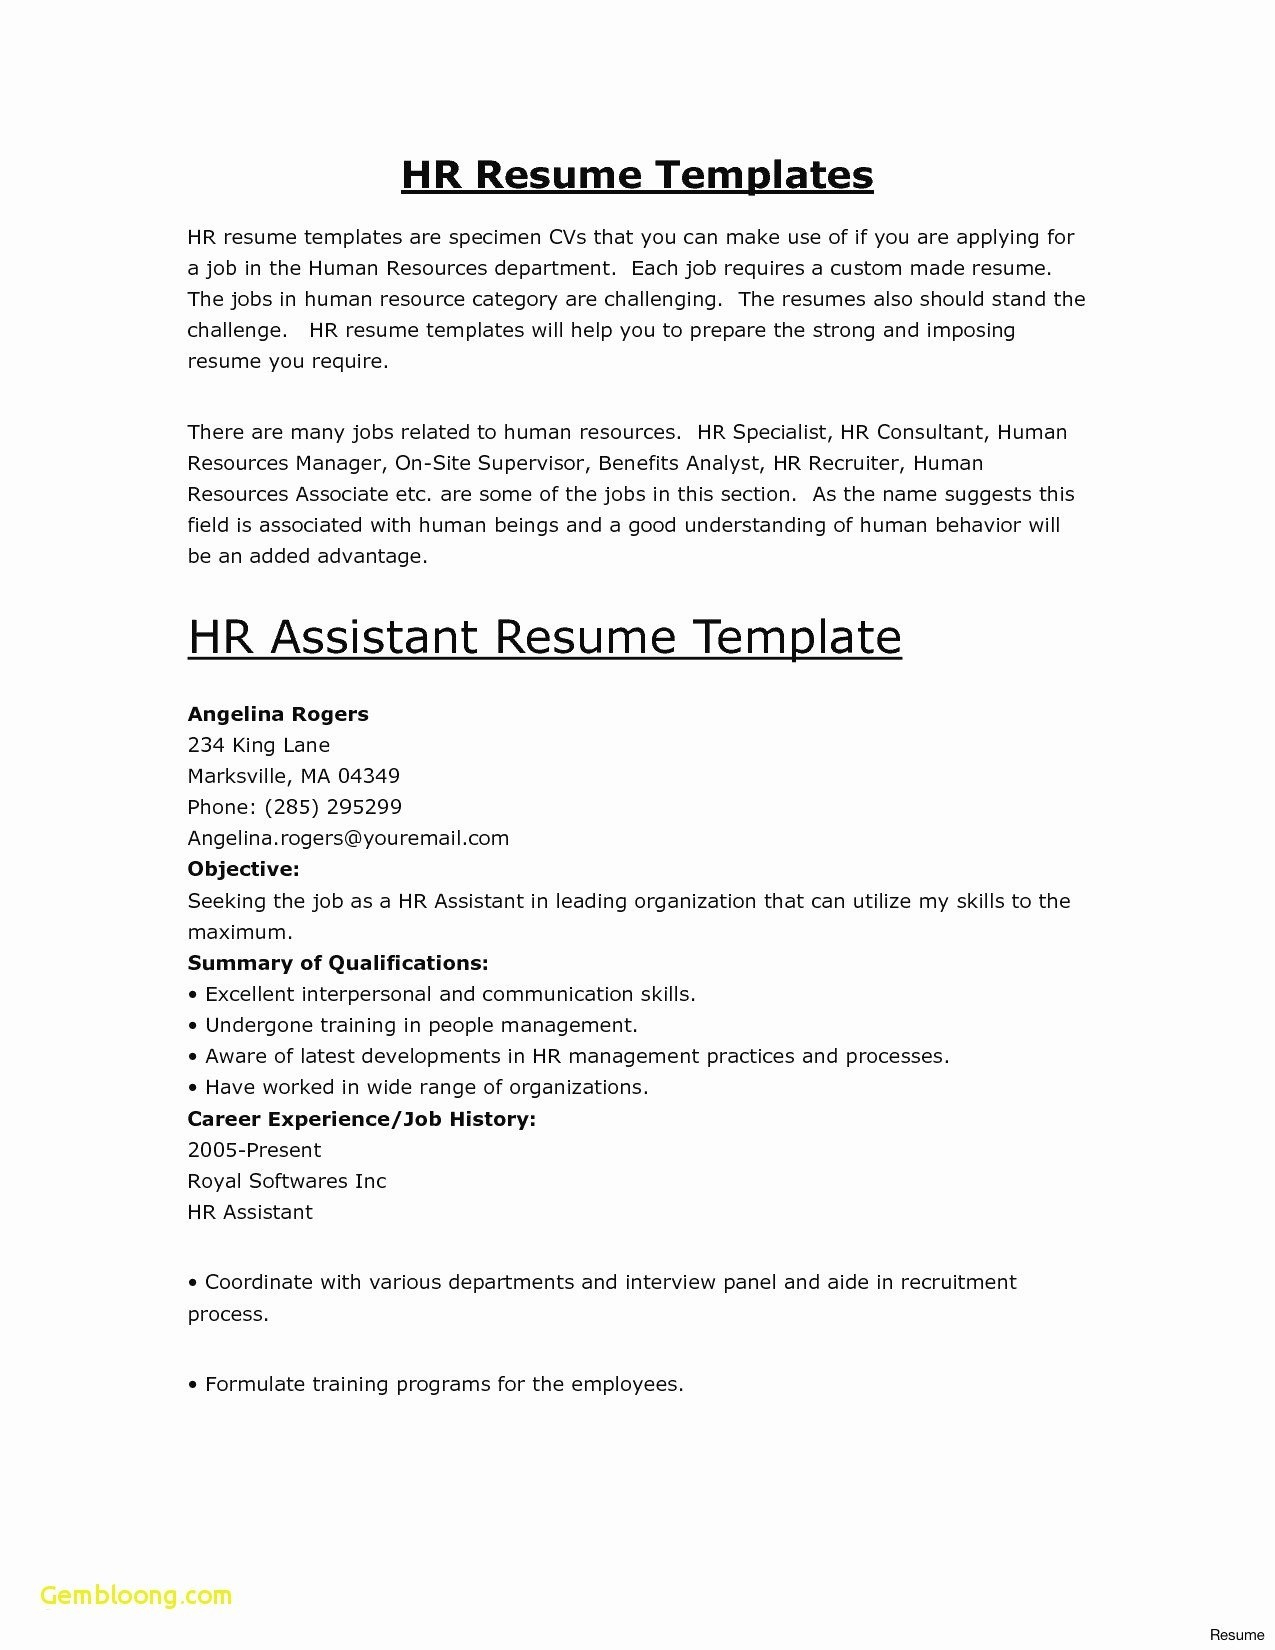 esthetician resume template example-Esthetician Resume Samples Awesome Resume for Freshers Download now 12-n